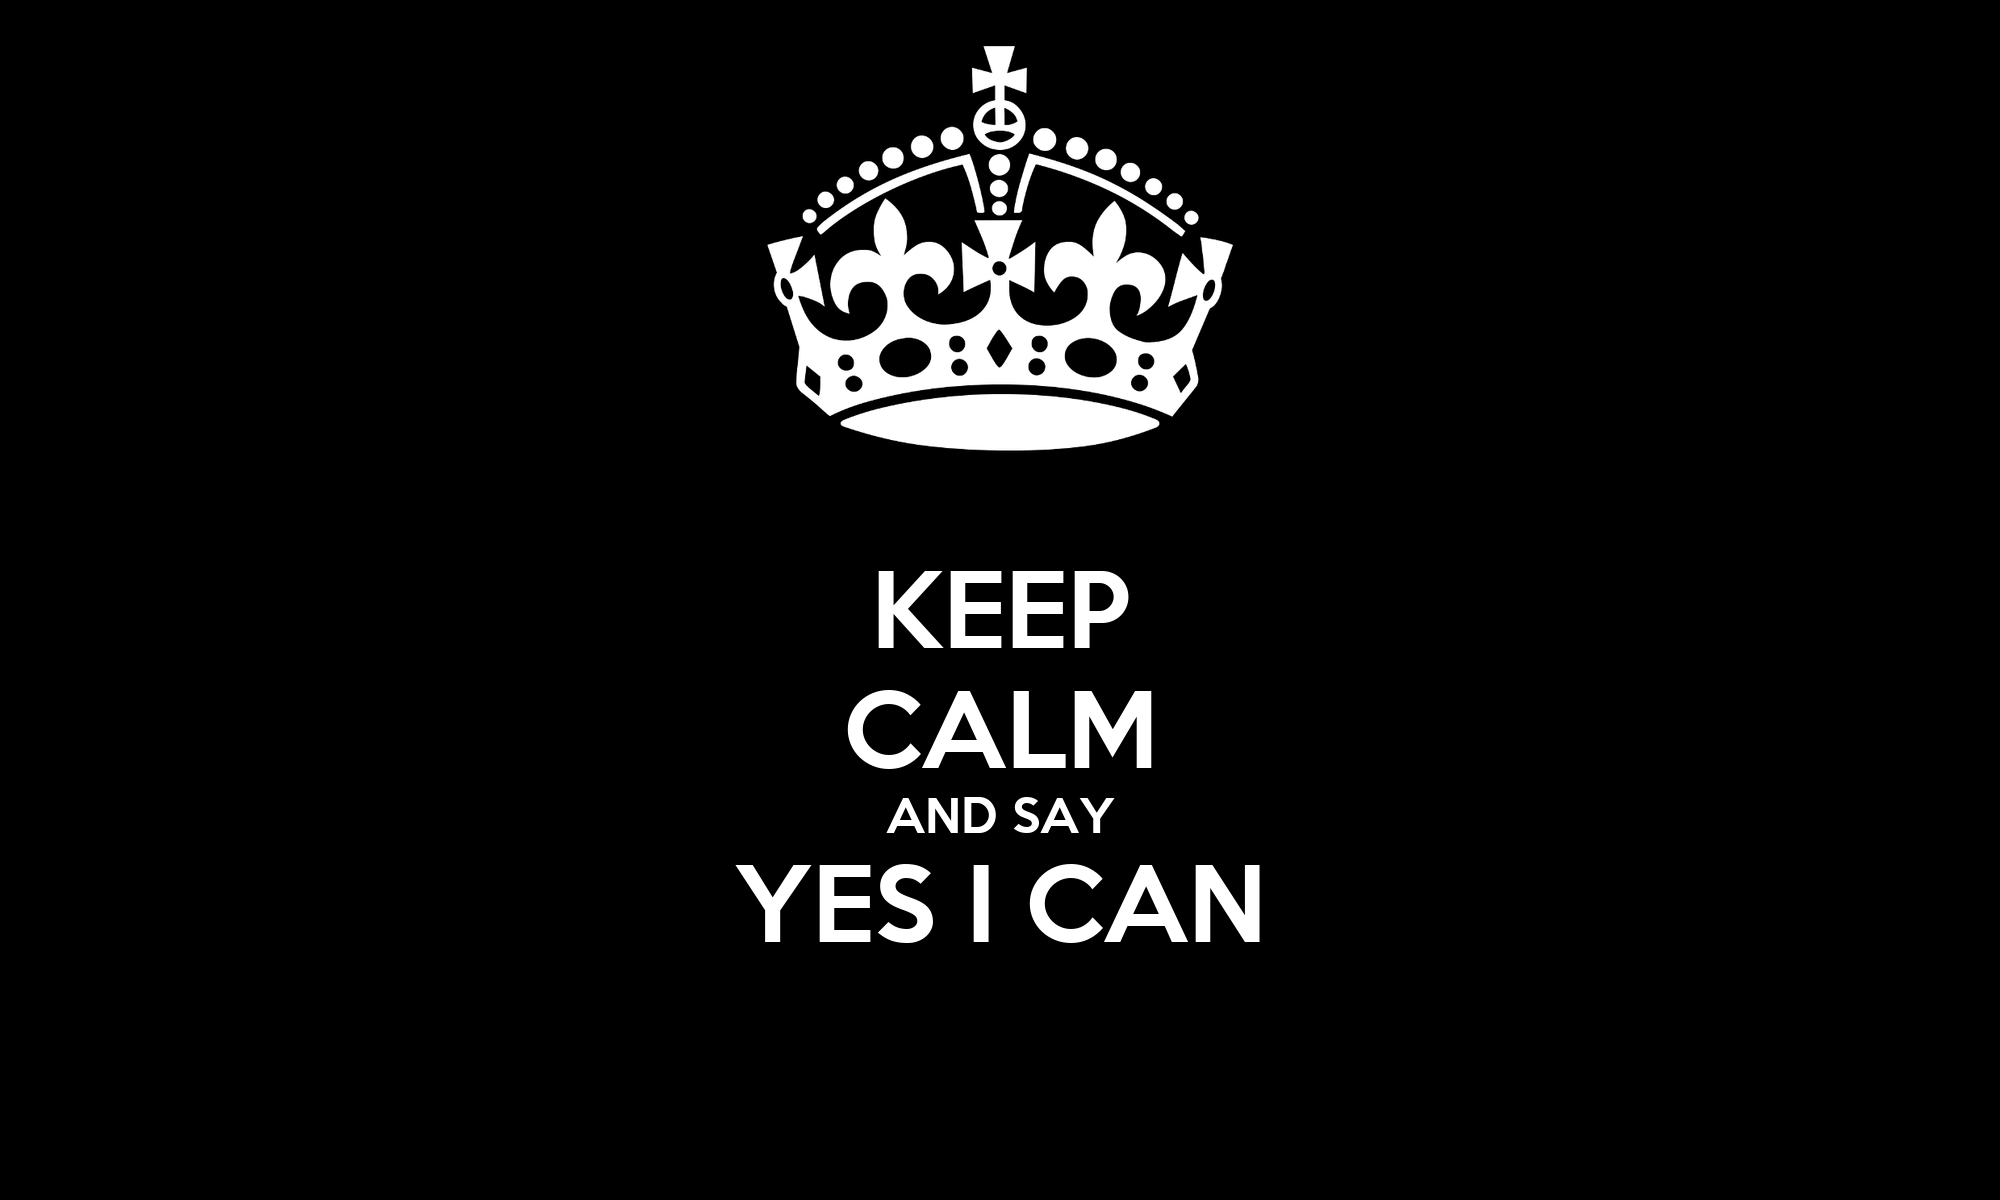 how to say yes i can in spanish